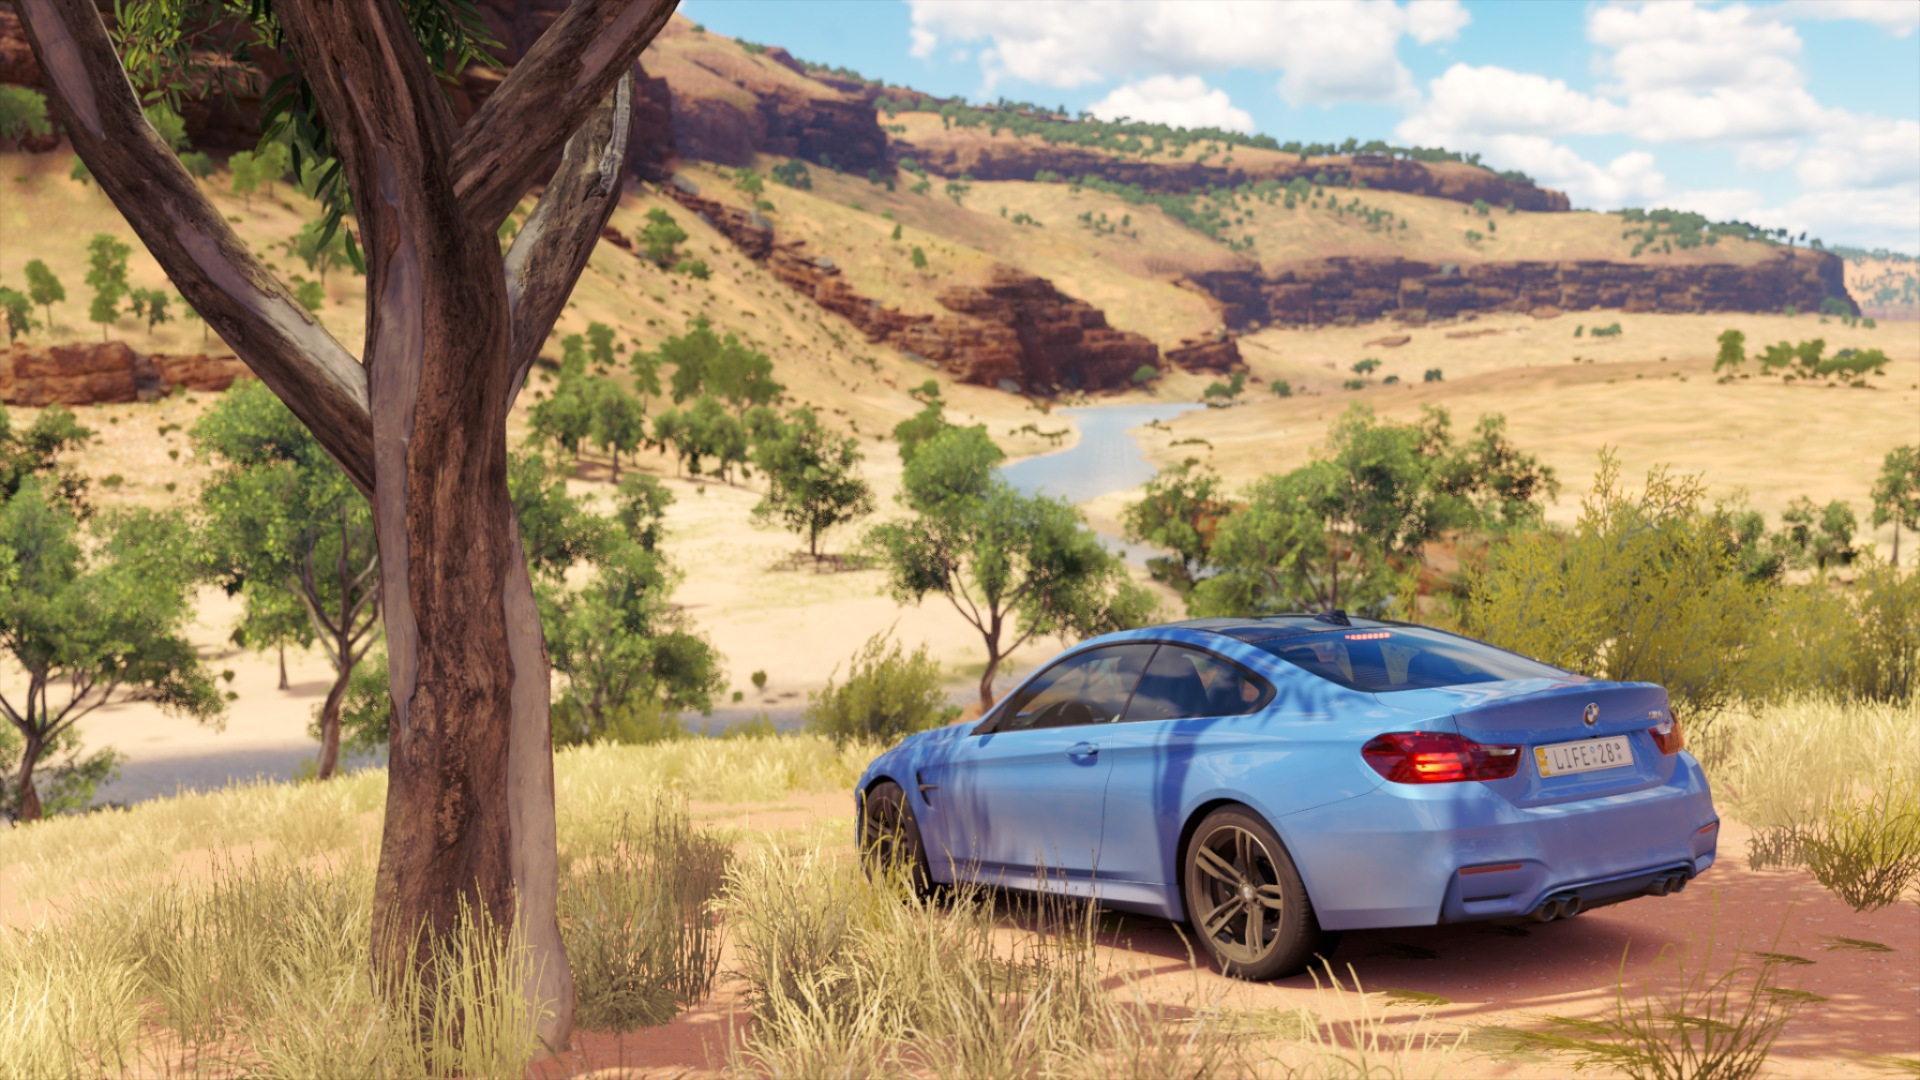 Forza Horizon 3 PC Screenshot 1080p 07